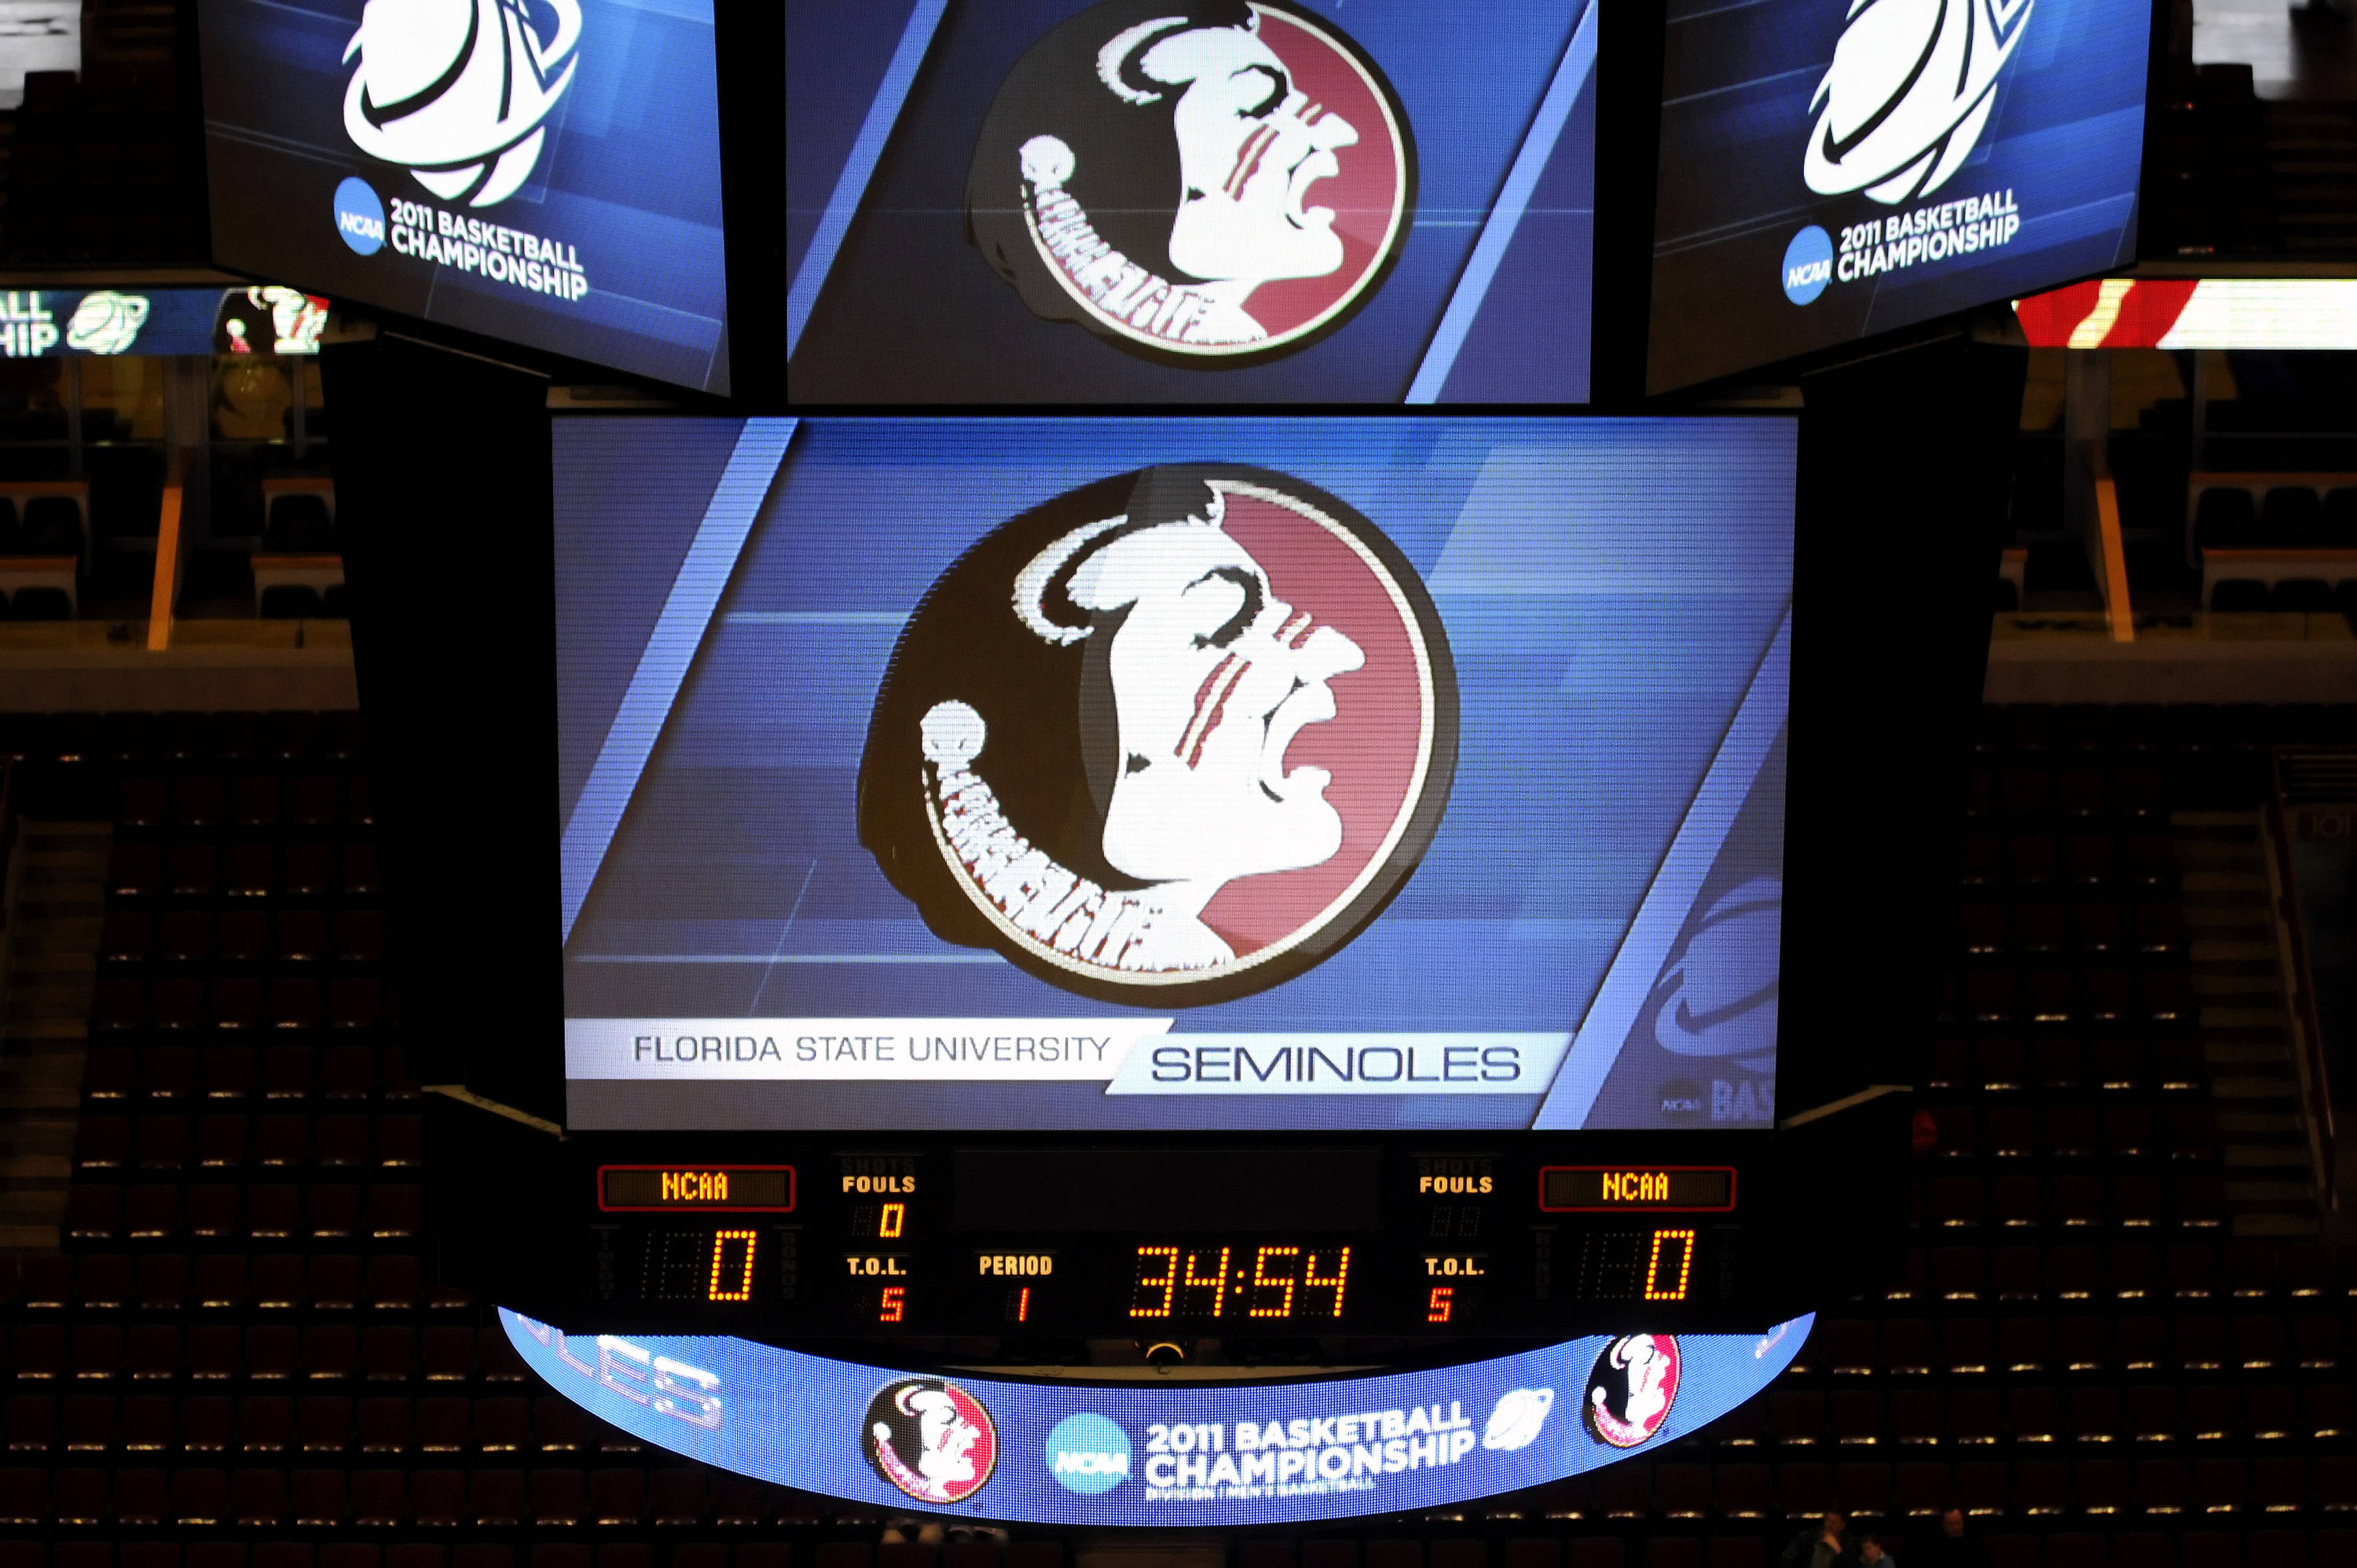 The NCAA welcomes Florida State to the court for practice